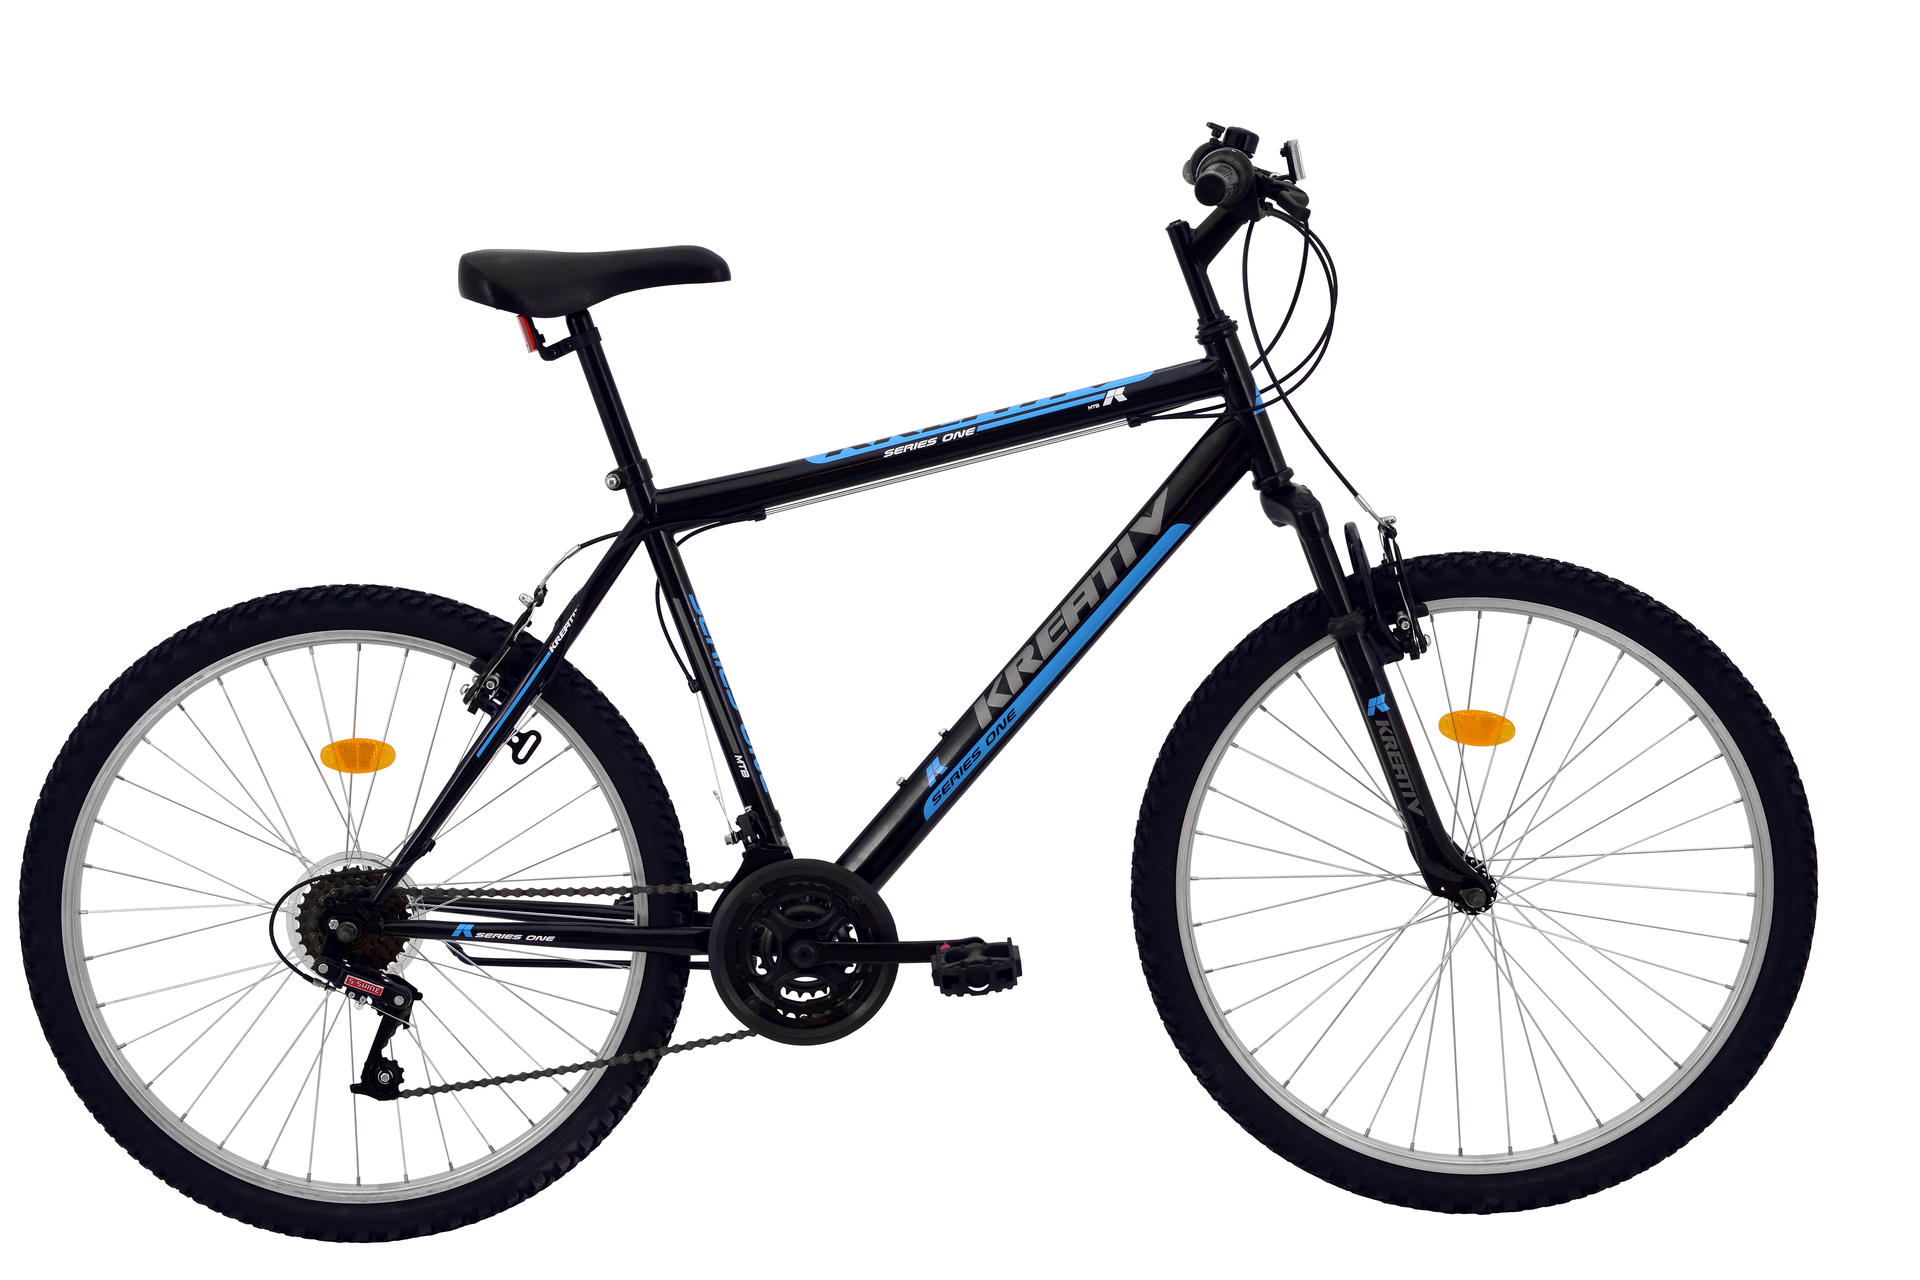 Mountain bike da uomo KREATIV 2603 Black